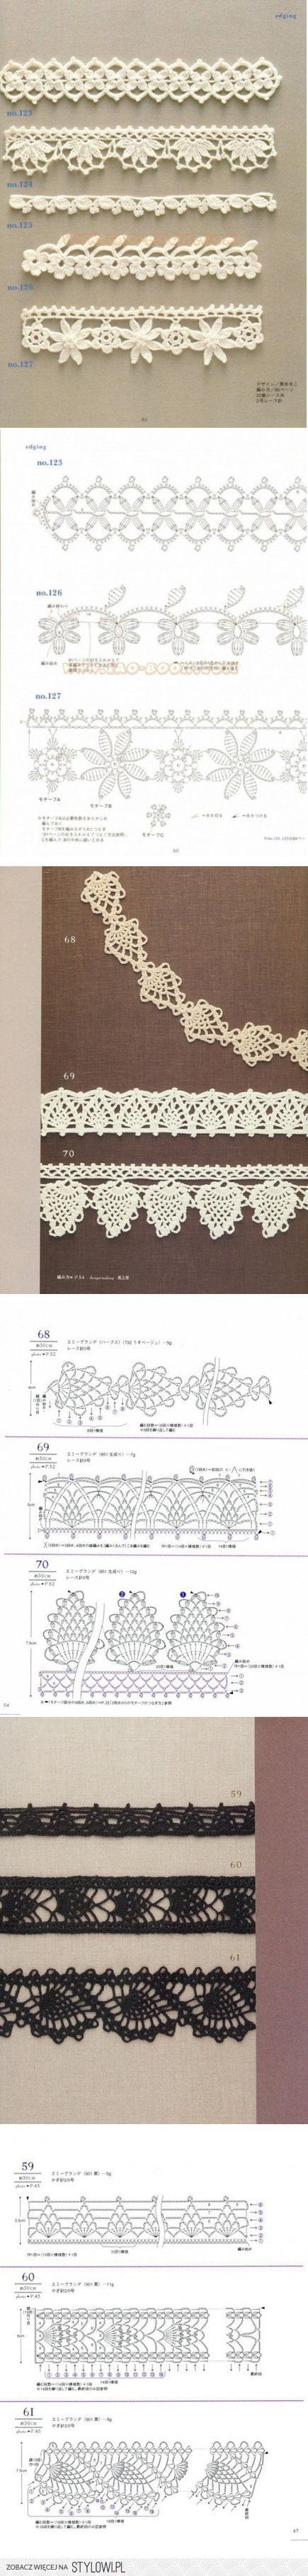 Lace Crochet Edging with Chart Diagram Pattern